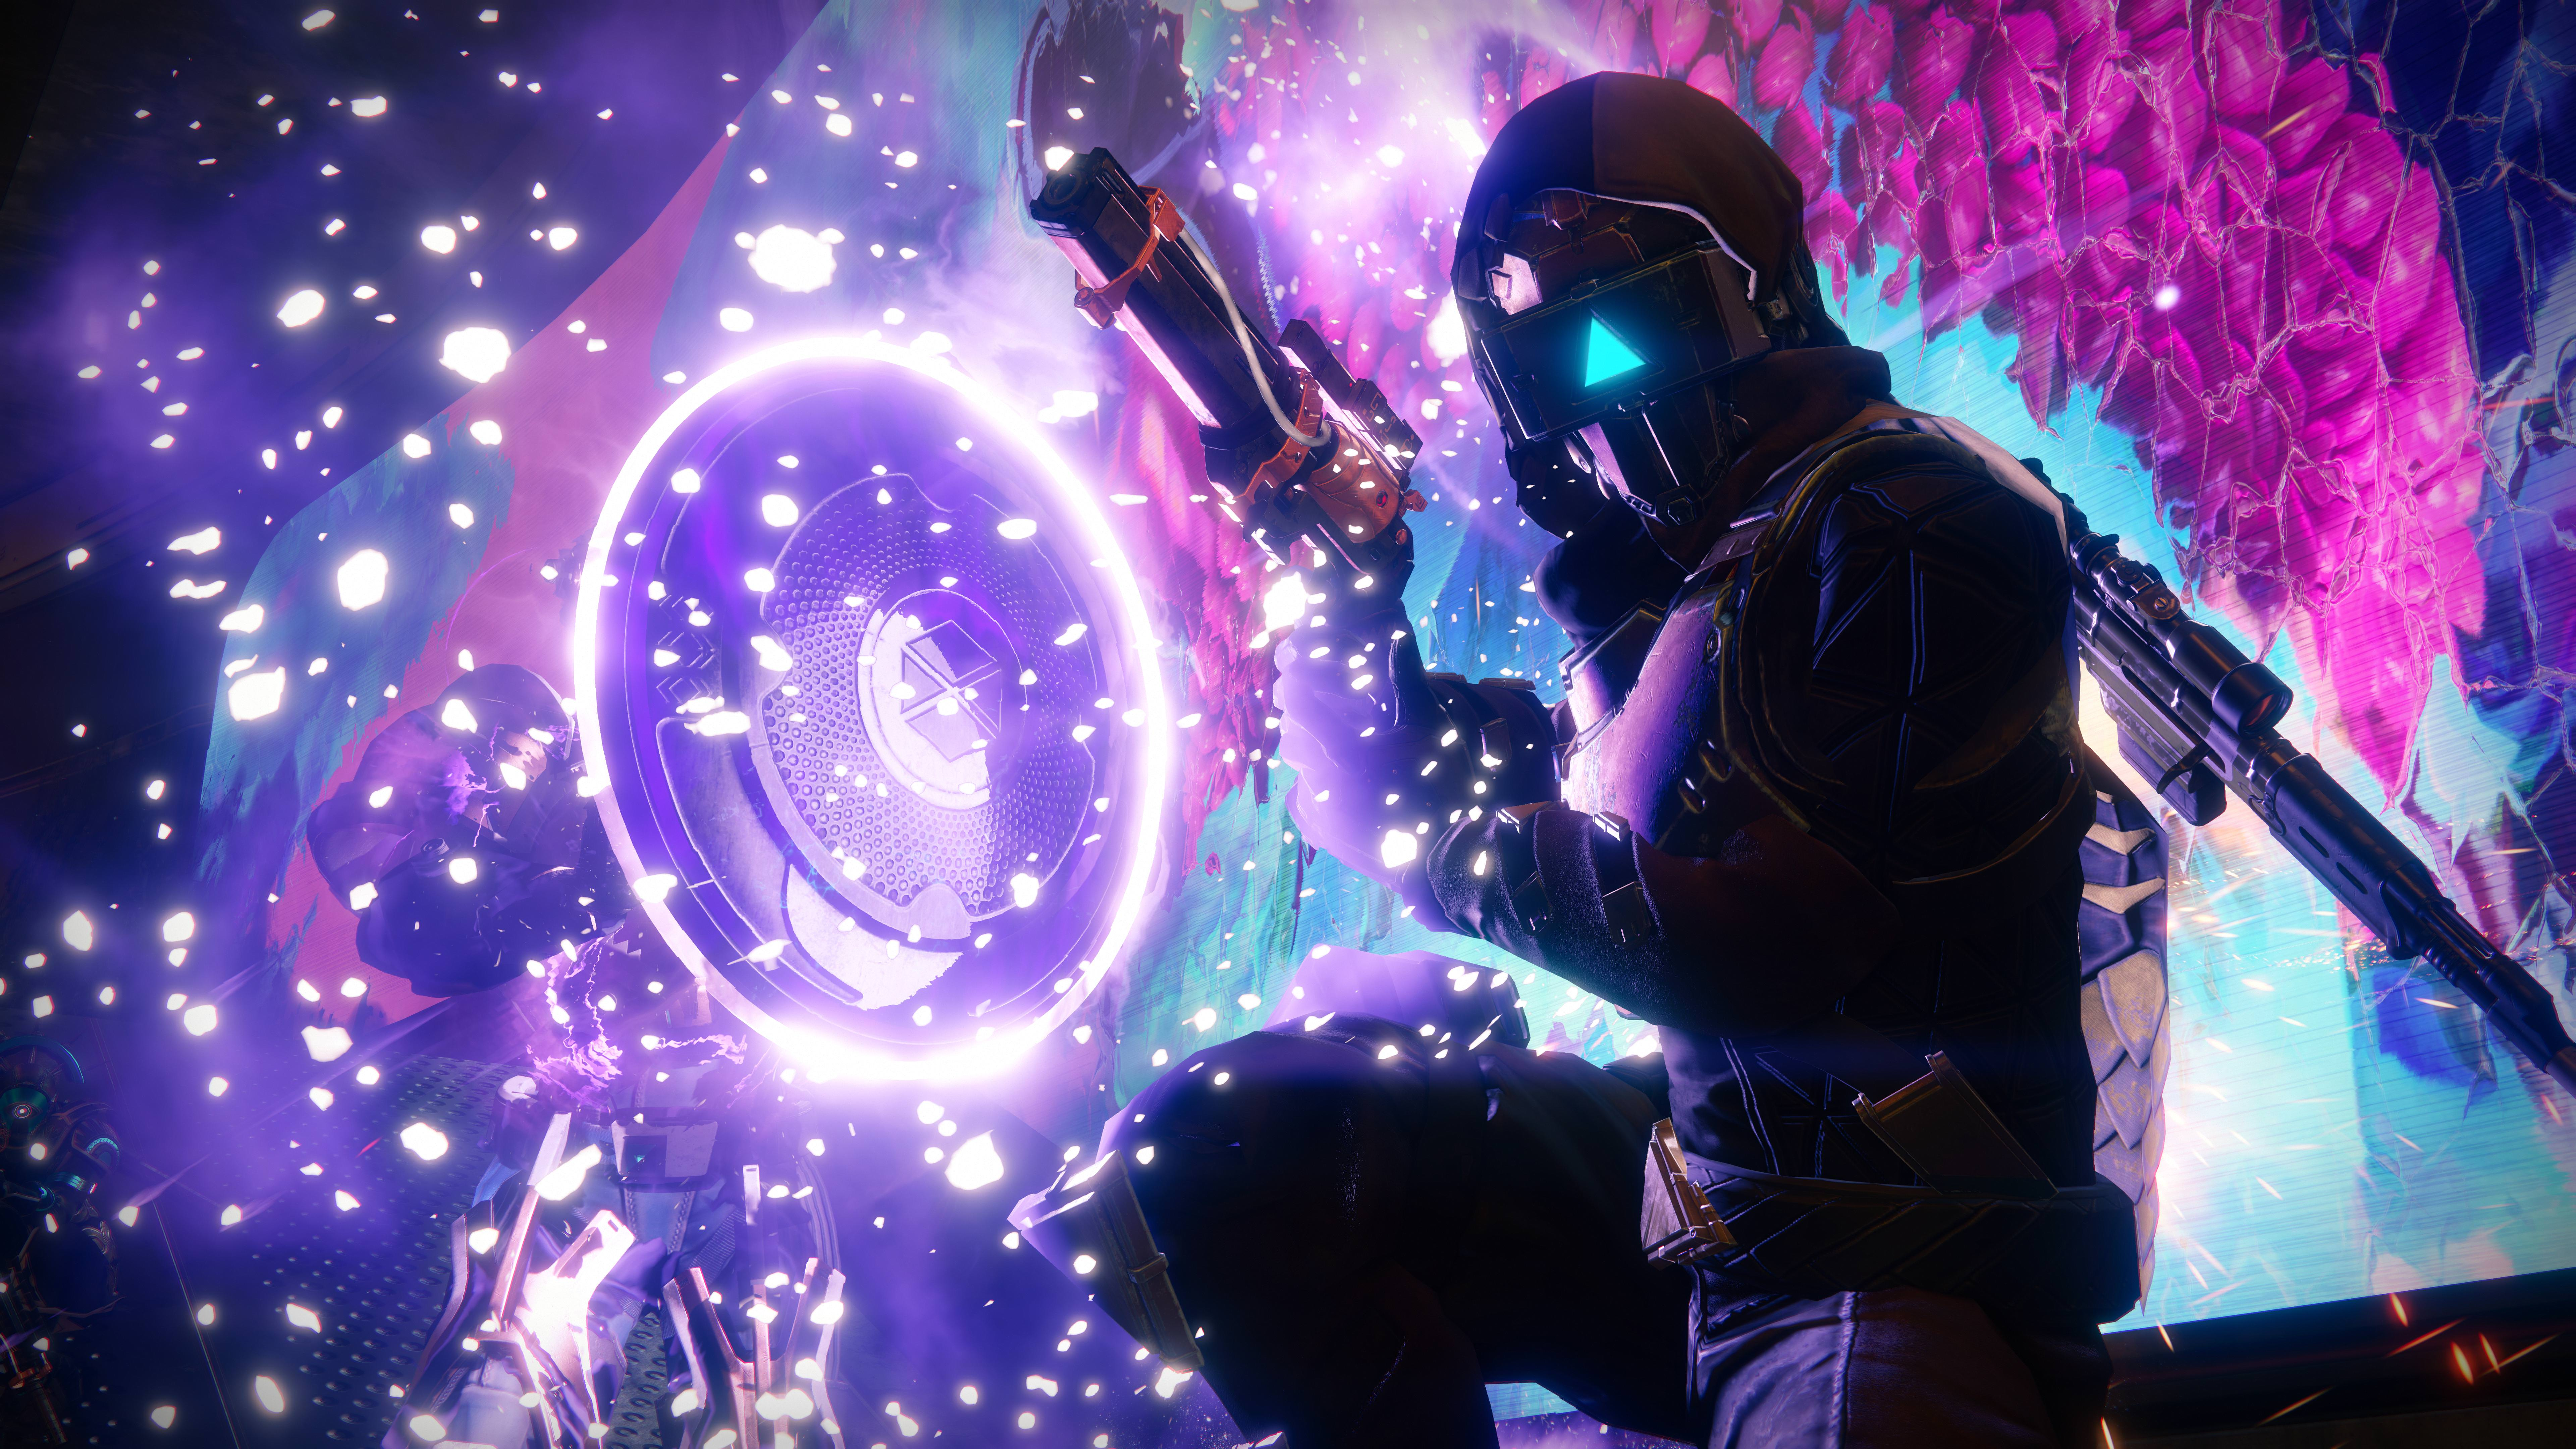 8k Destiny 2, HD Games, 4k Wallpapers, Images, Backgrounds, Photos and Pictures